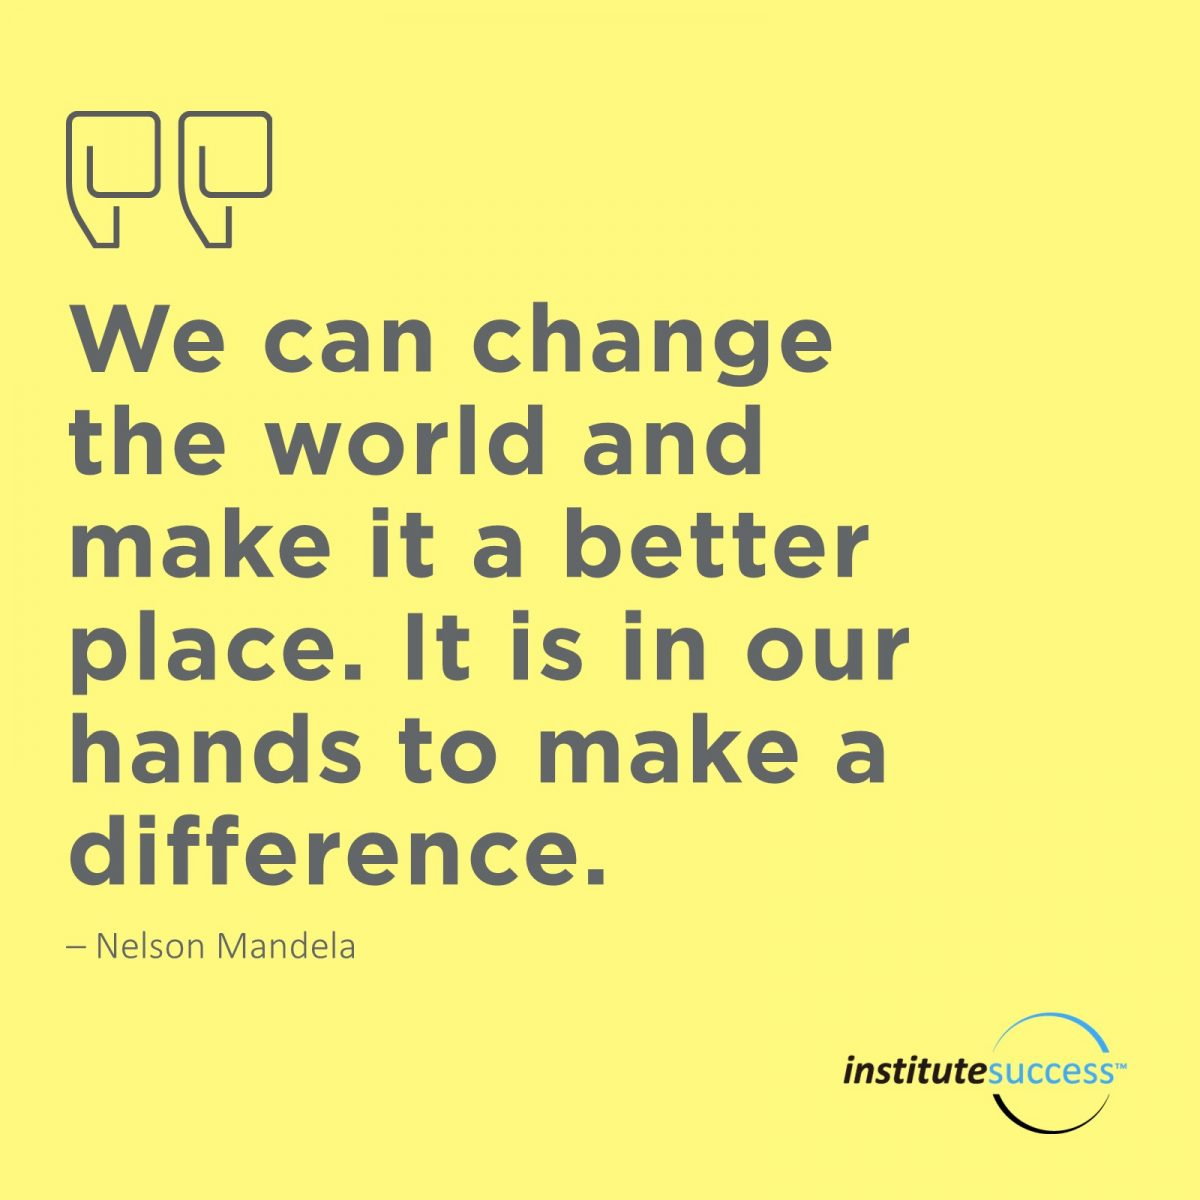 We can change the world and make it a better place. It is in our hands to make a difference. Nelson Mandela